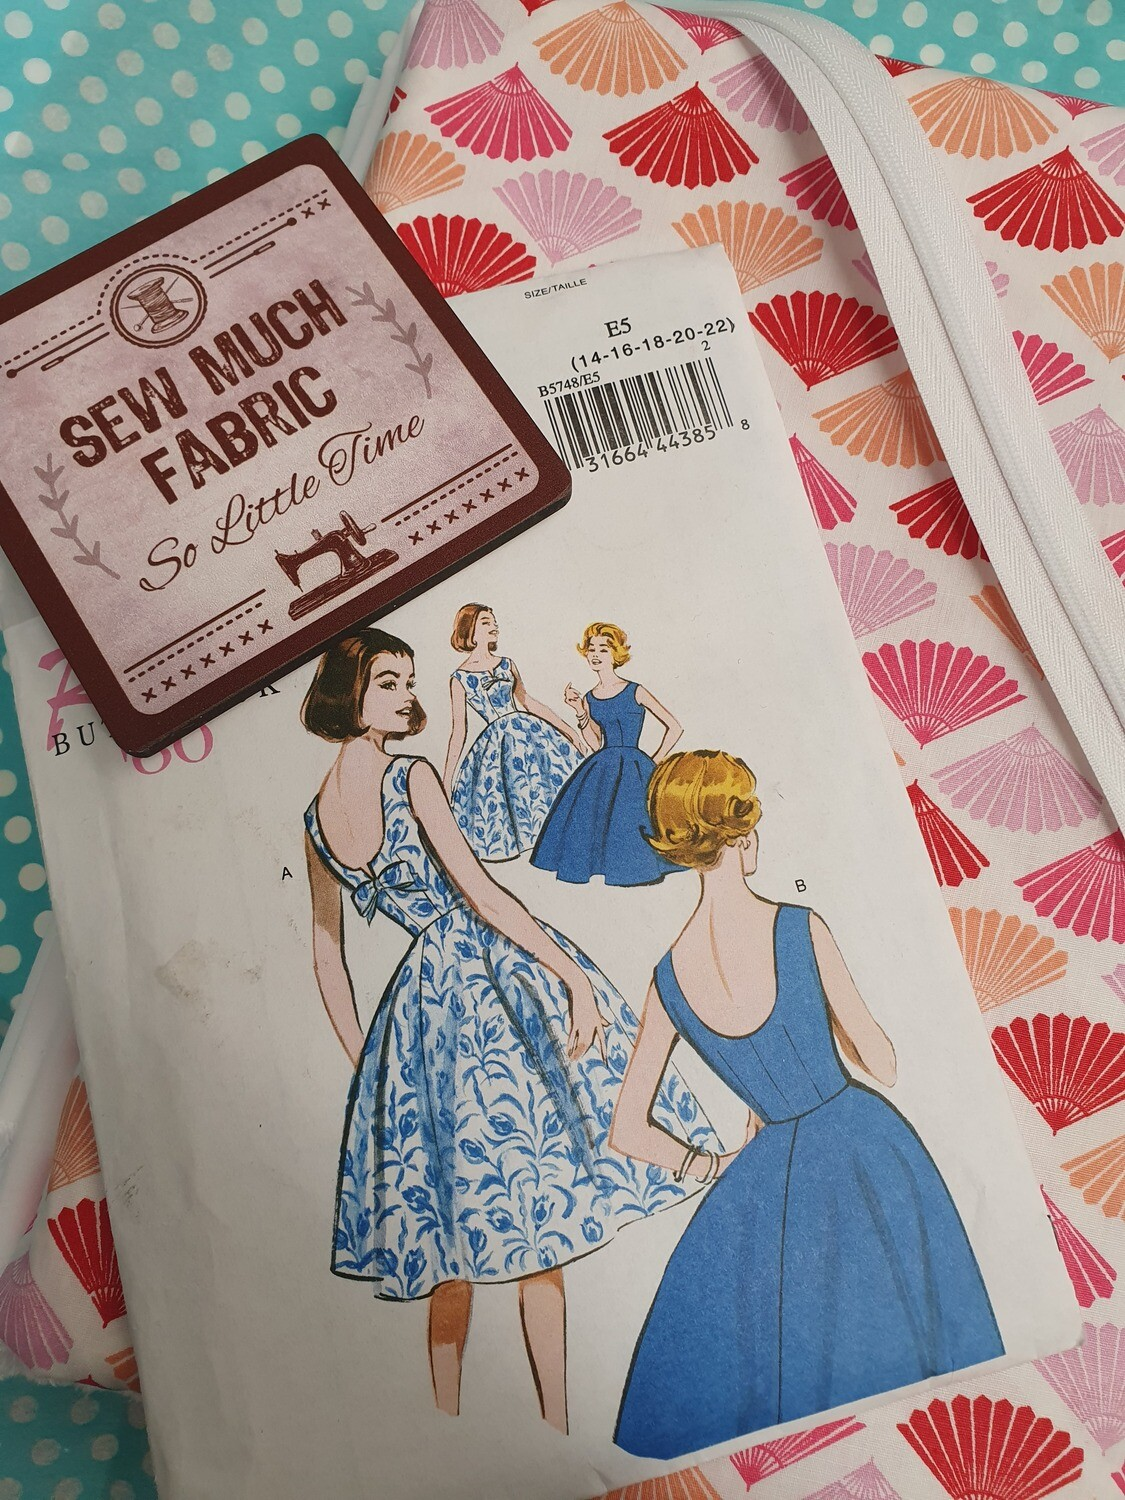 Sew Vintage Fabulous sewing box (subscription)